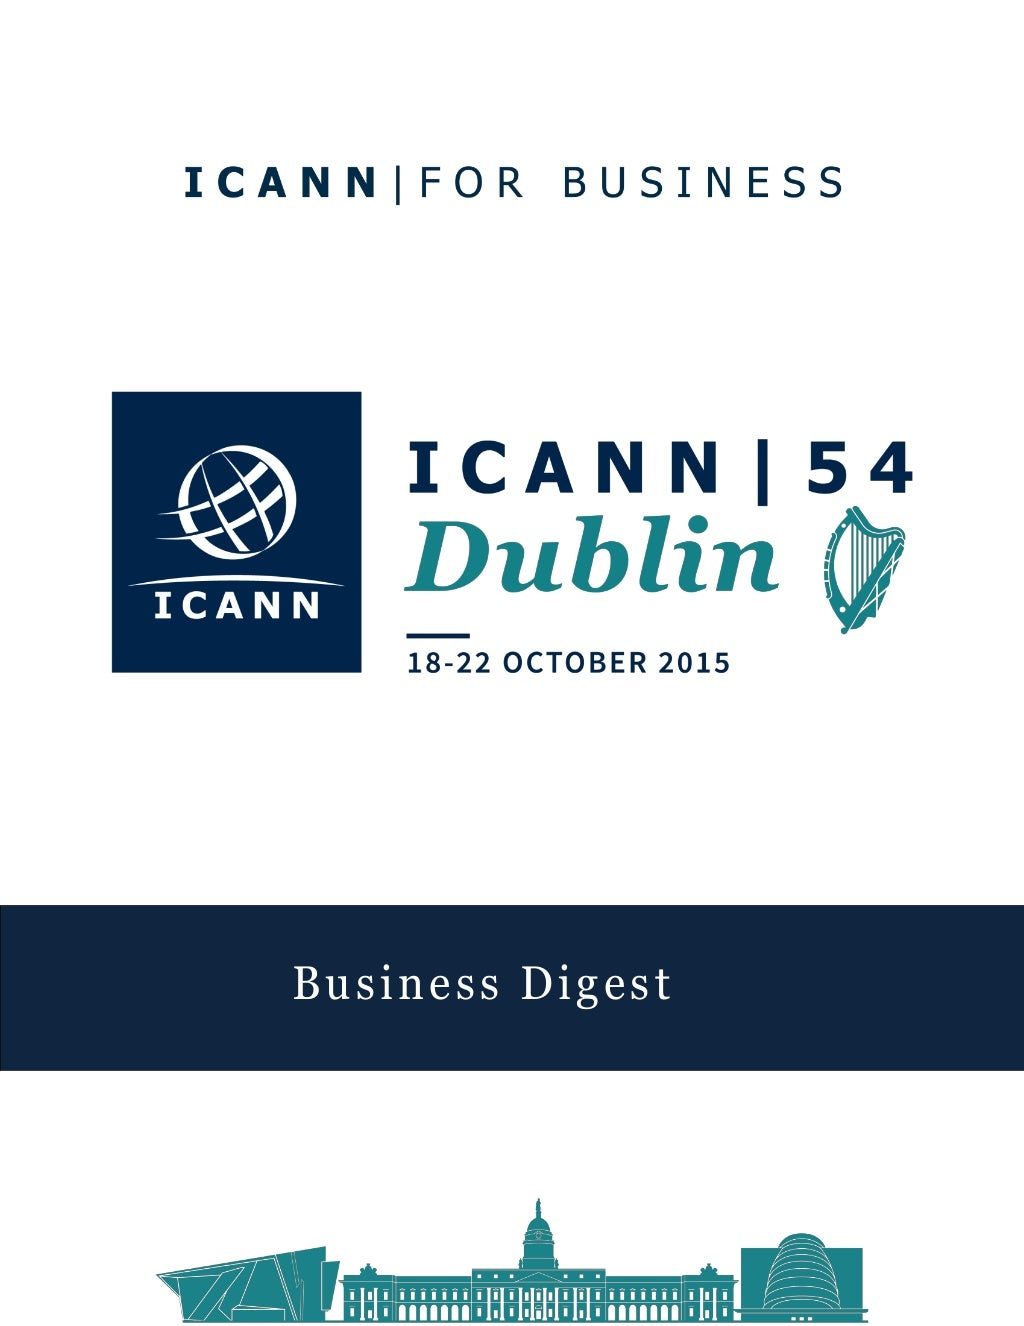 ICANN54 Business Digest